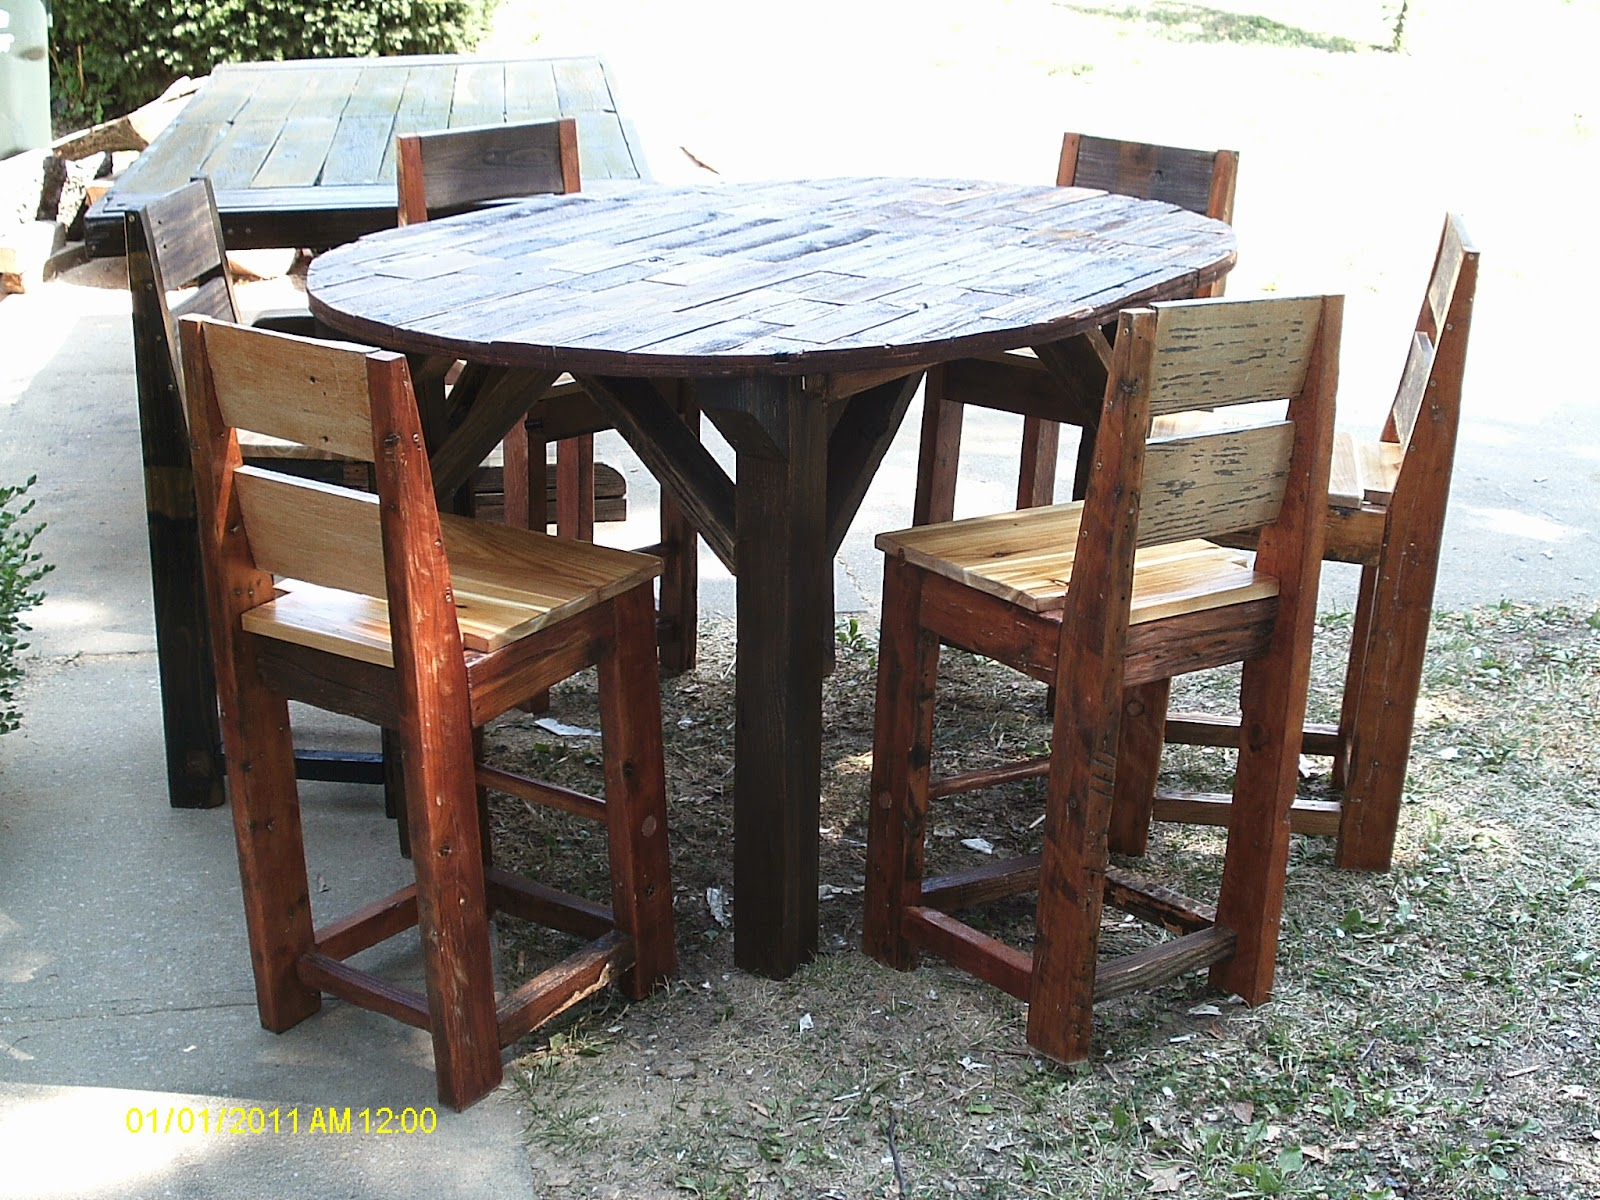 handmade rustic log furniture 48 x 36 tall pub table with leaf and 6 chair set. Black Bedroom Furniture Sets. Home Design Ideas